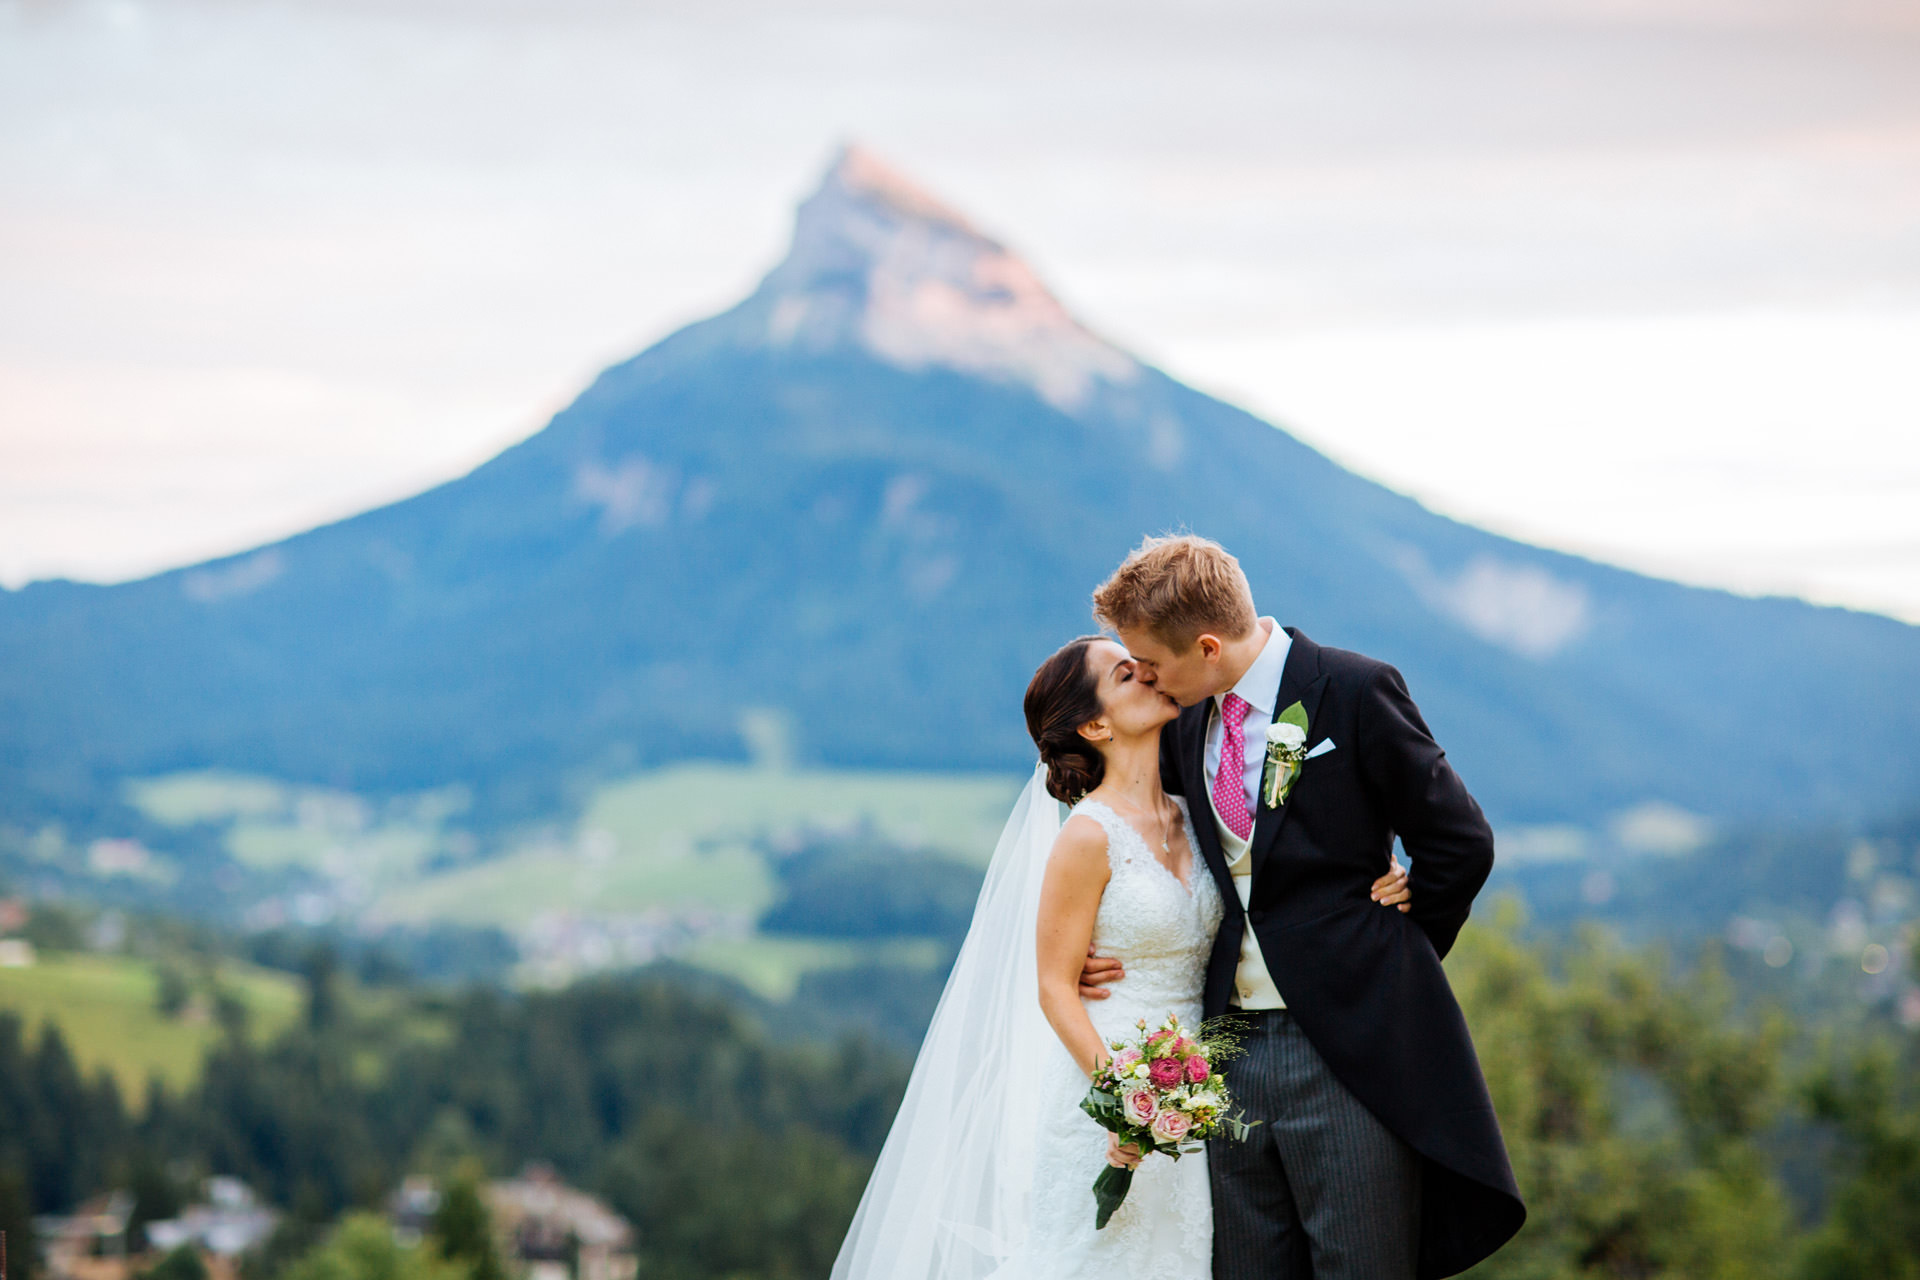 bride and groom kiss in front of mountain backdrop